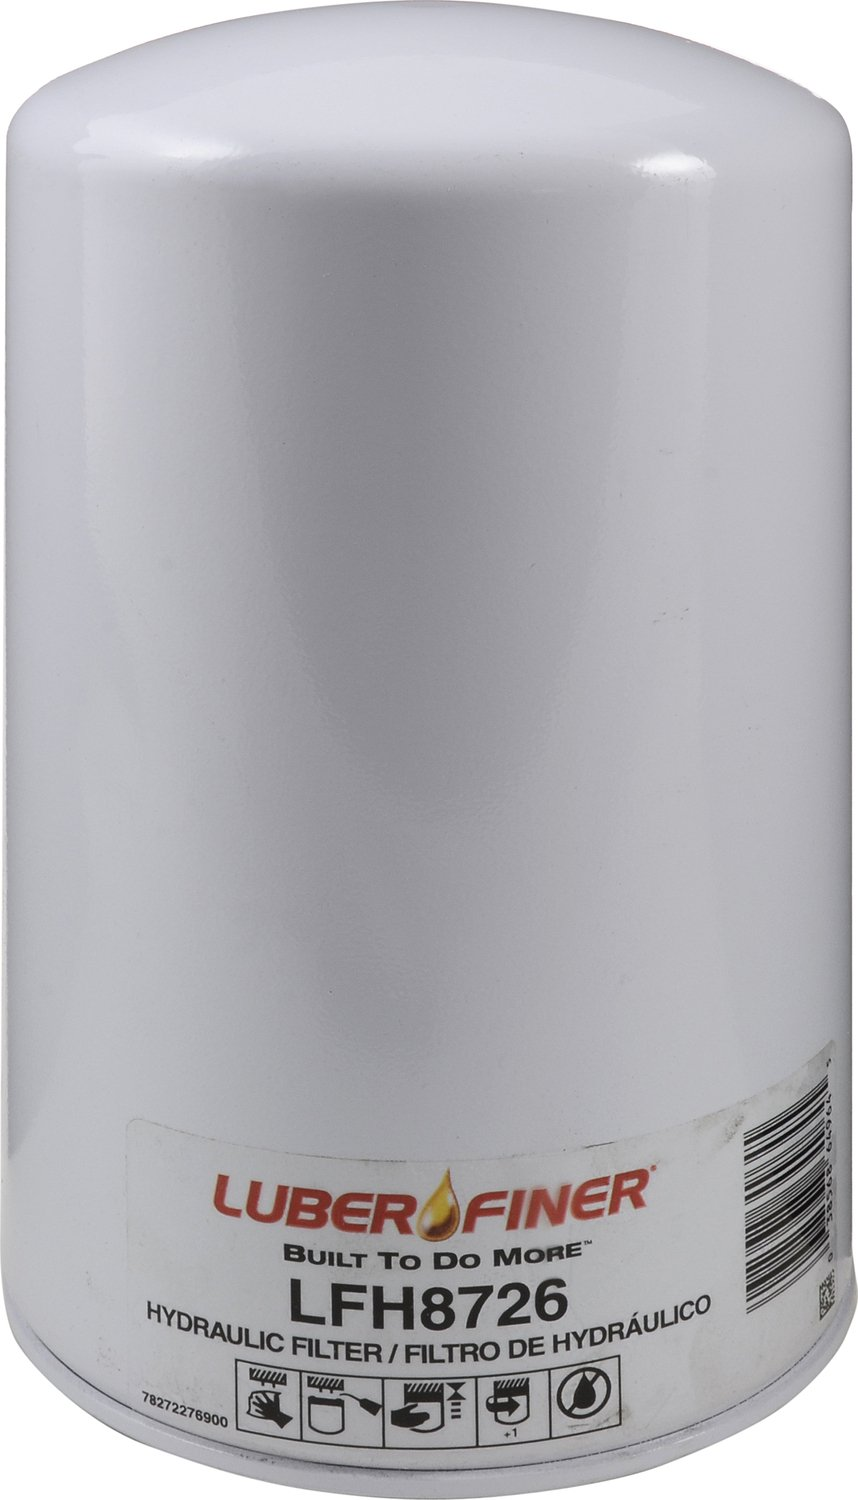 Luber-finer LFH8726 Hydraulic Filter